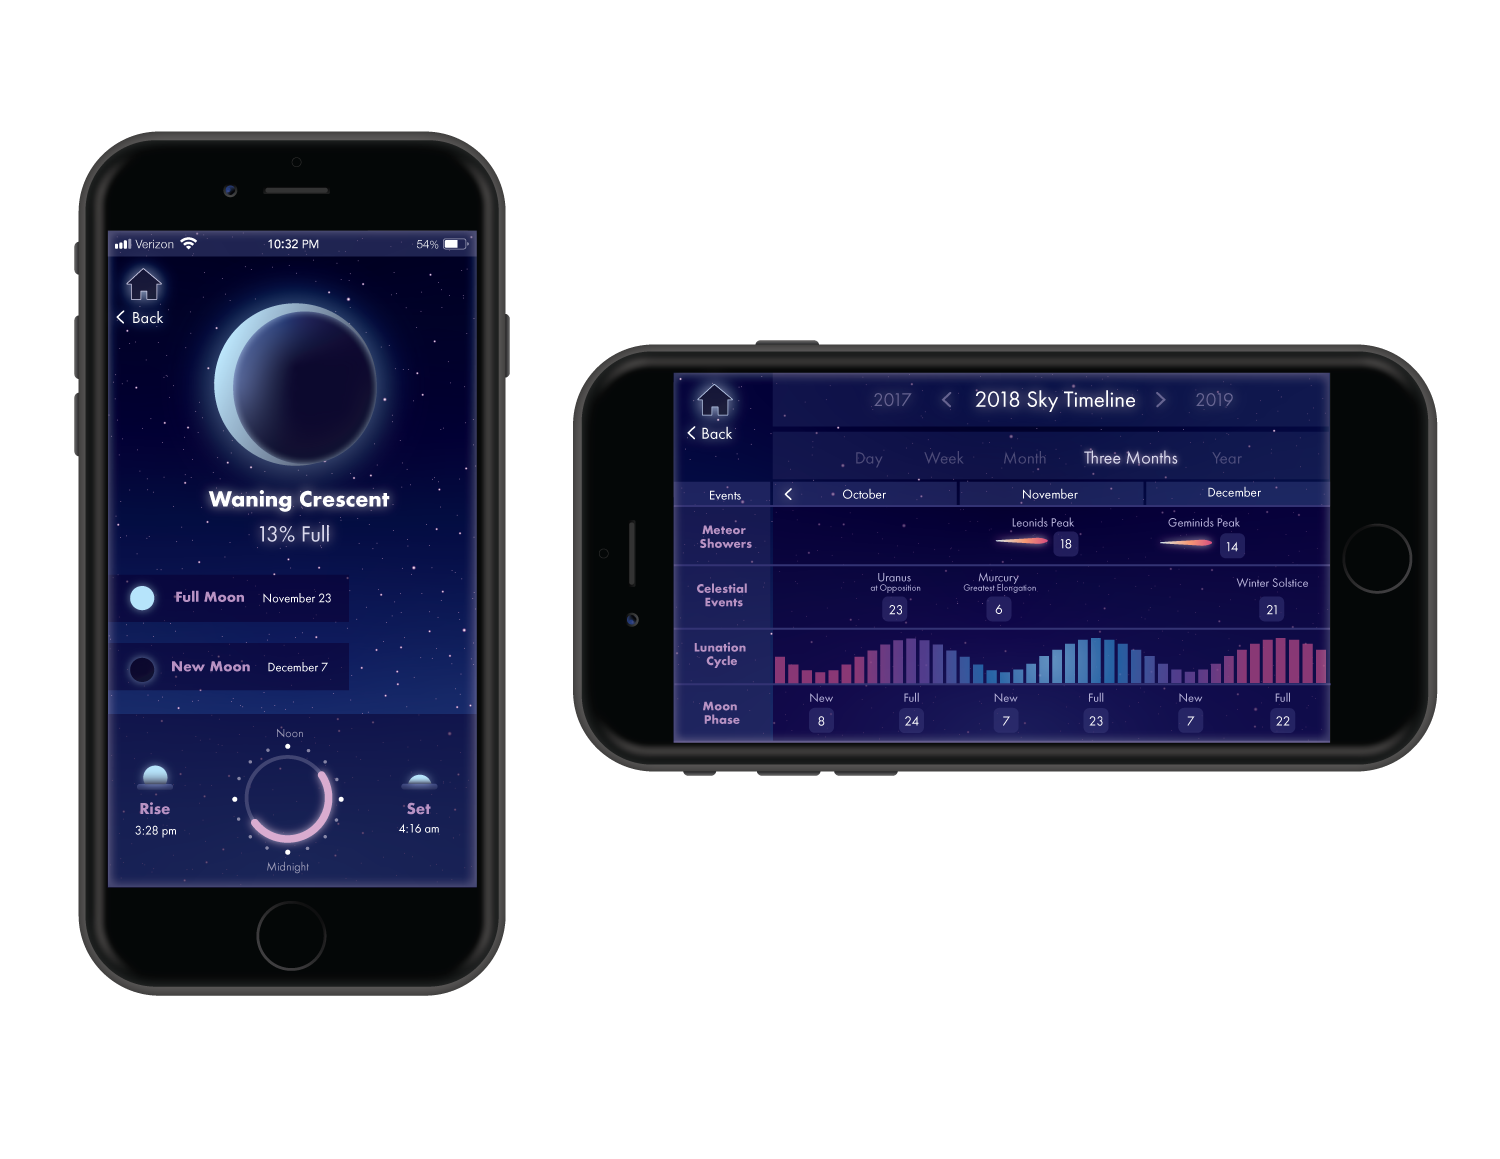 Digital rendering of an iPhone with a mock-up of an astronomy app by Kara Perili